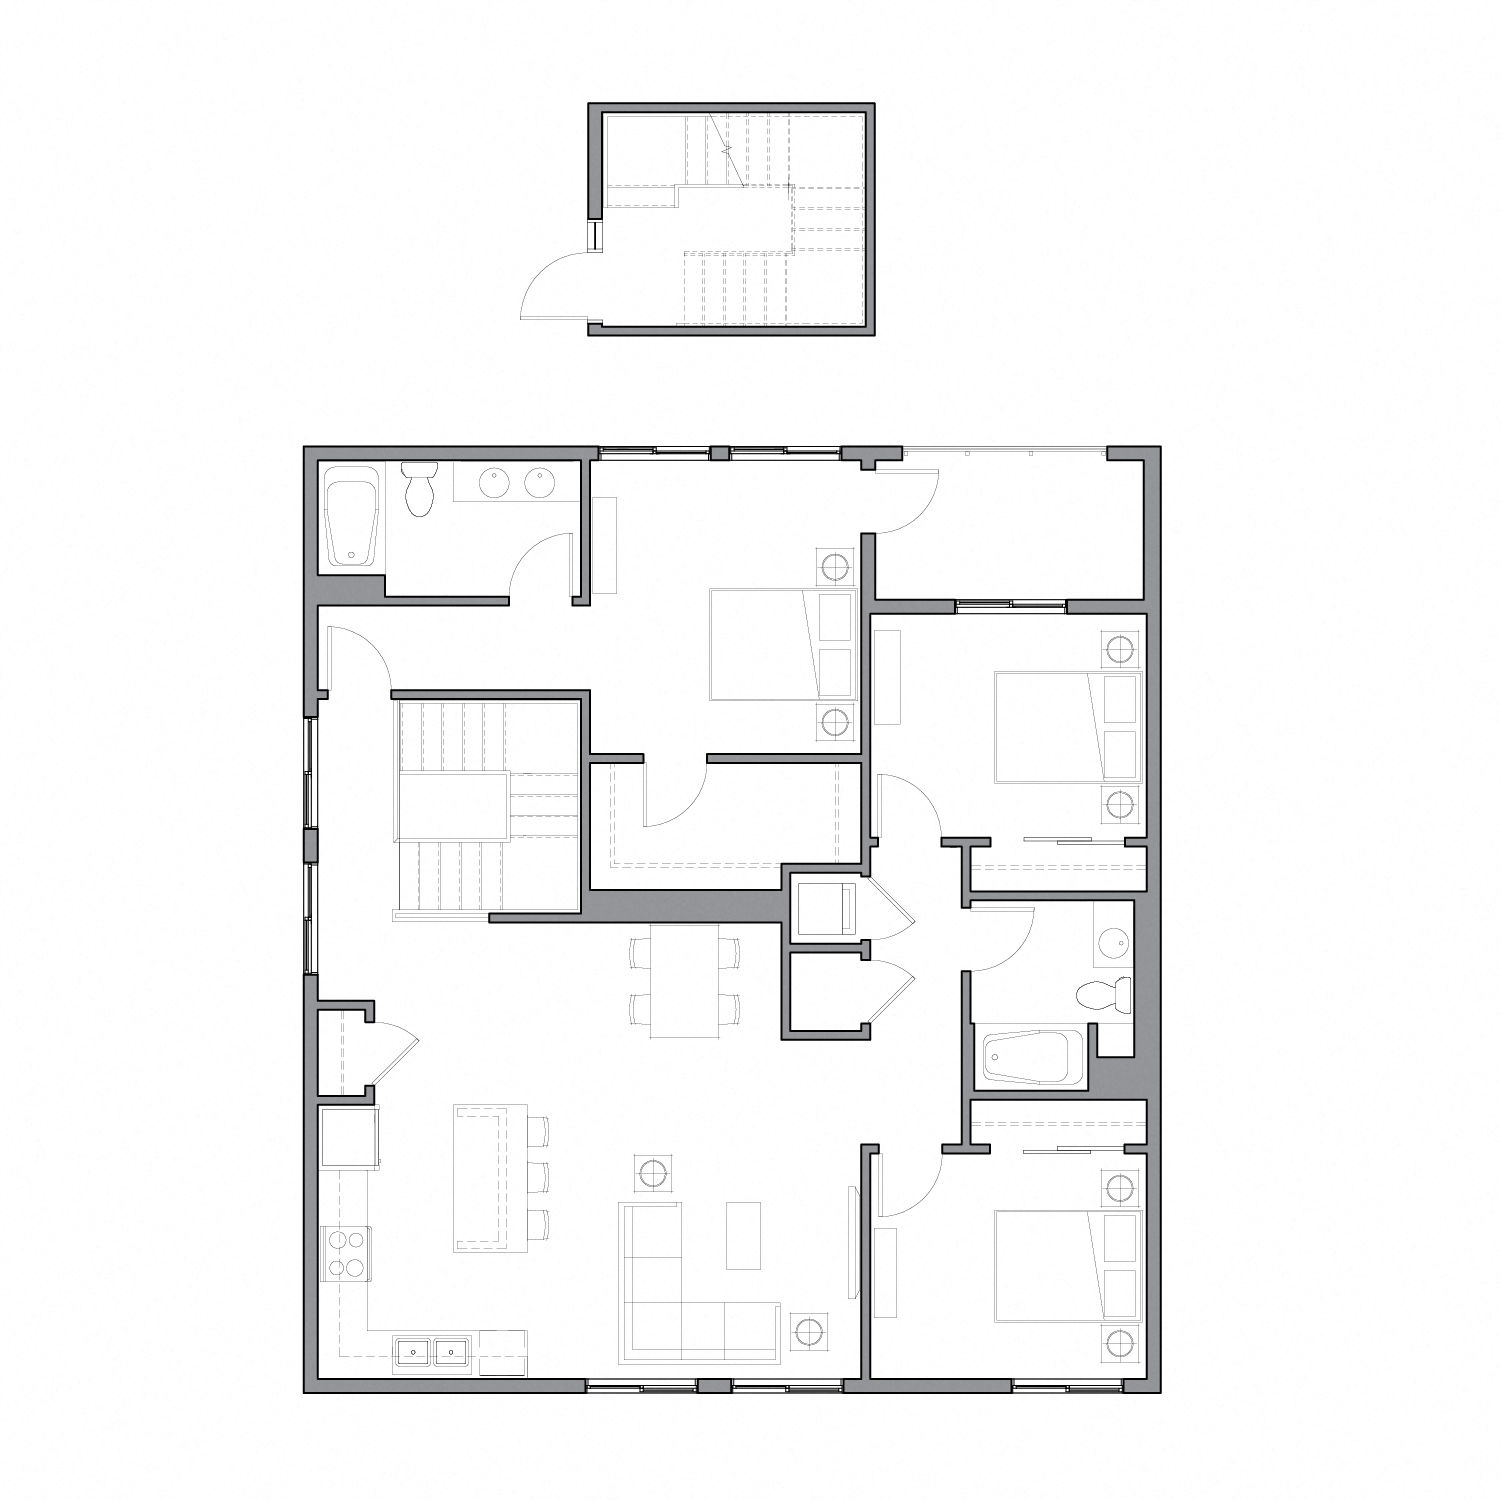 Lofted floor plan diagram with three bedrooms, two bathrooms, and an open kitchen dining and living space